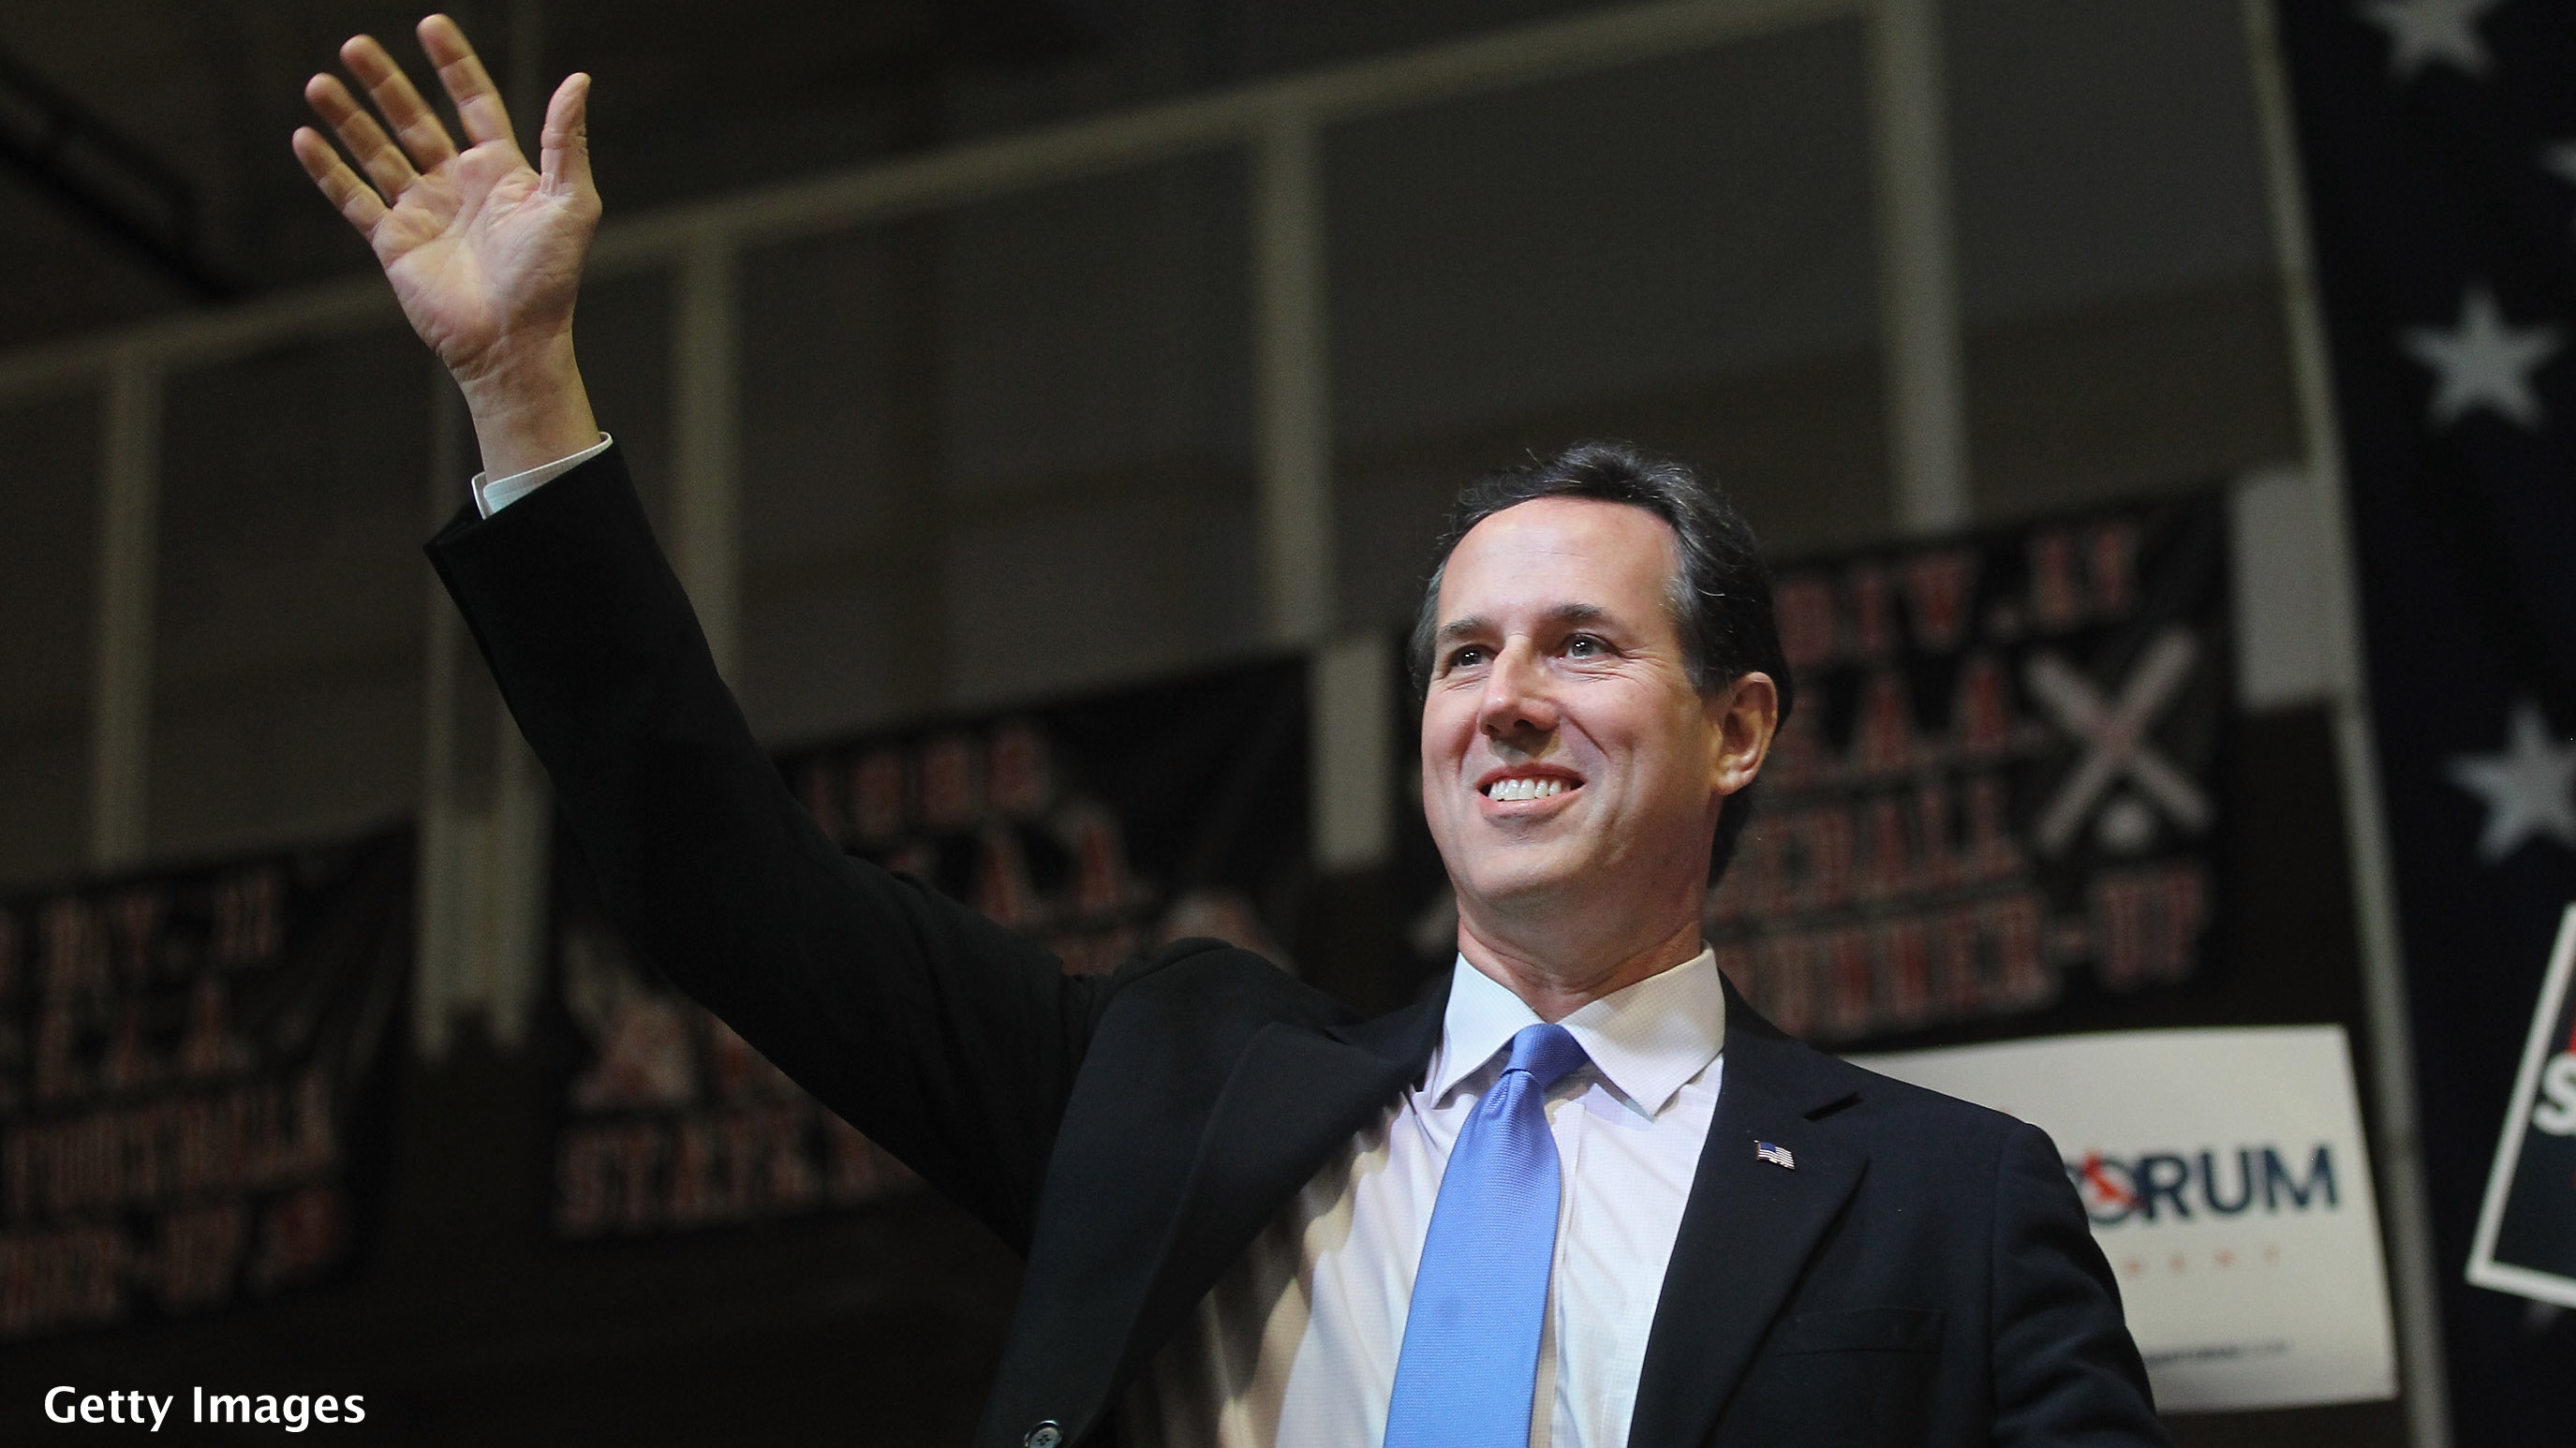 BREAKING: Santorum wins Oklahoma primary, CNN projects